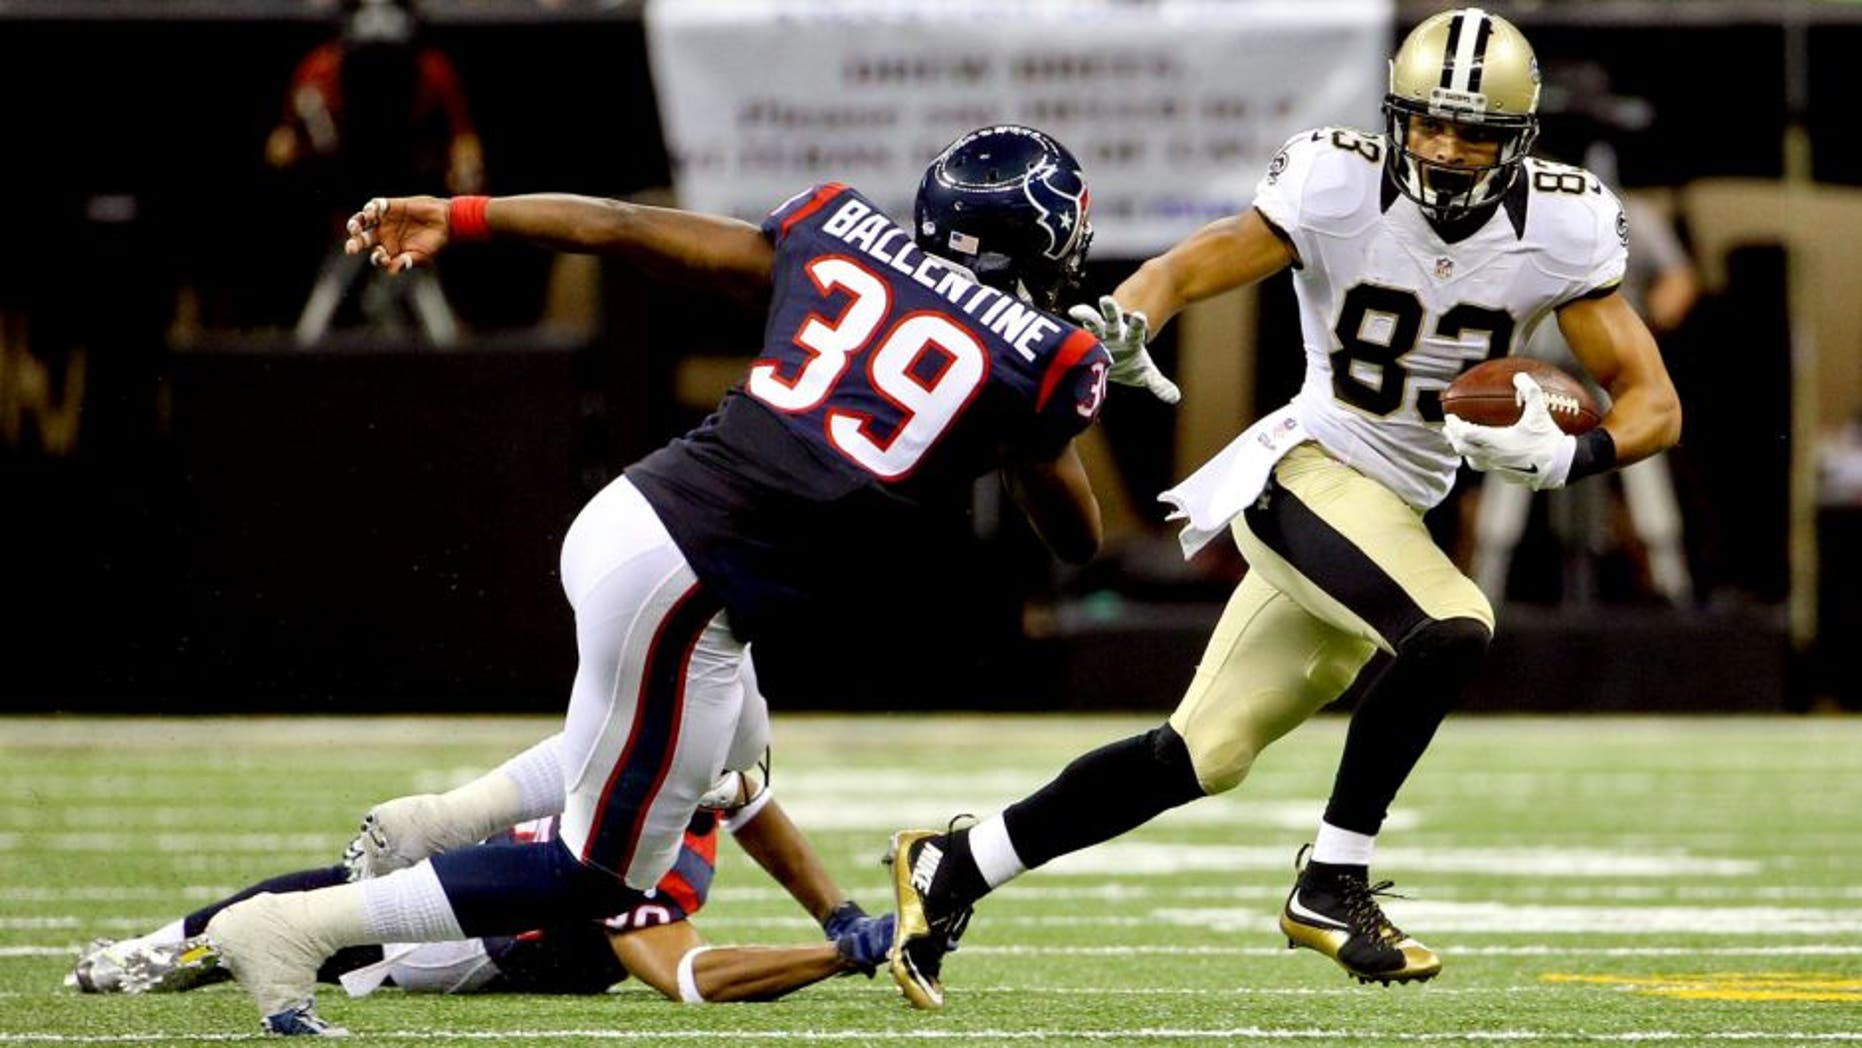 Aug 30, 2015; New Orleans, LA, USA; New Orleans Saints wide receiver Willie Snead (83) escapes from Houston Texans cornerback Kevin Johnson (30) and safety Lonnie Ballentine (39) during the first half of a preseason game at the Mercedes-Benz Superdome. Mandatory Credit: Derick E. Hingle-USA TODAY Sports